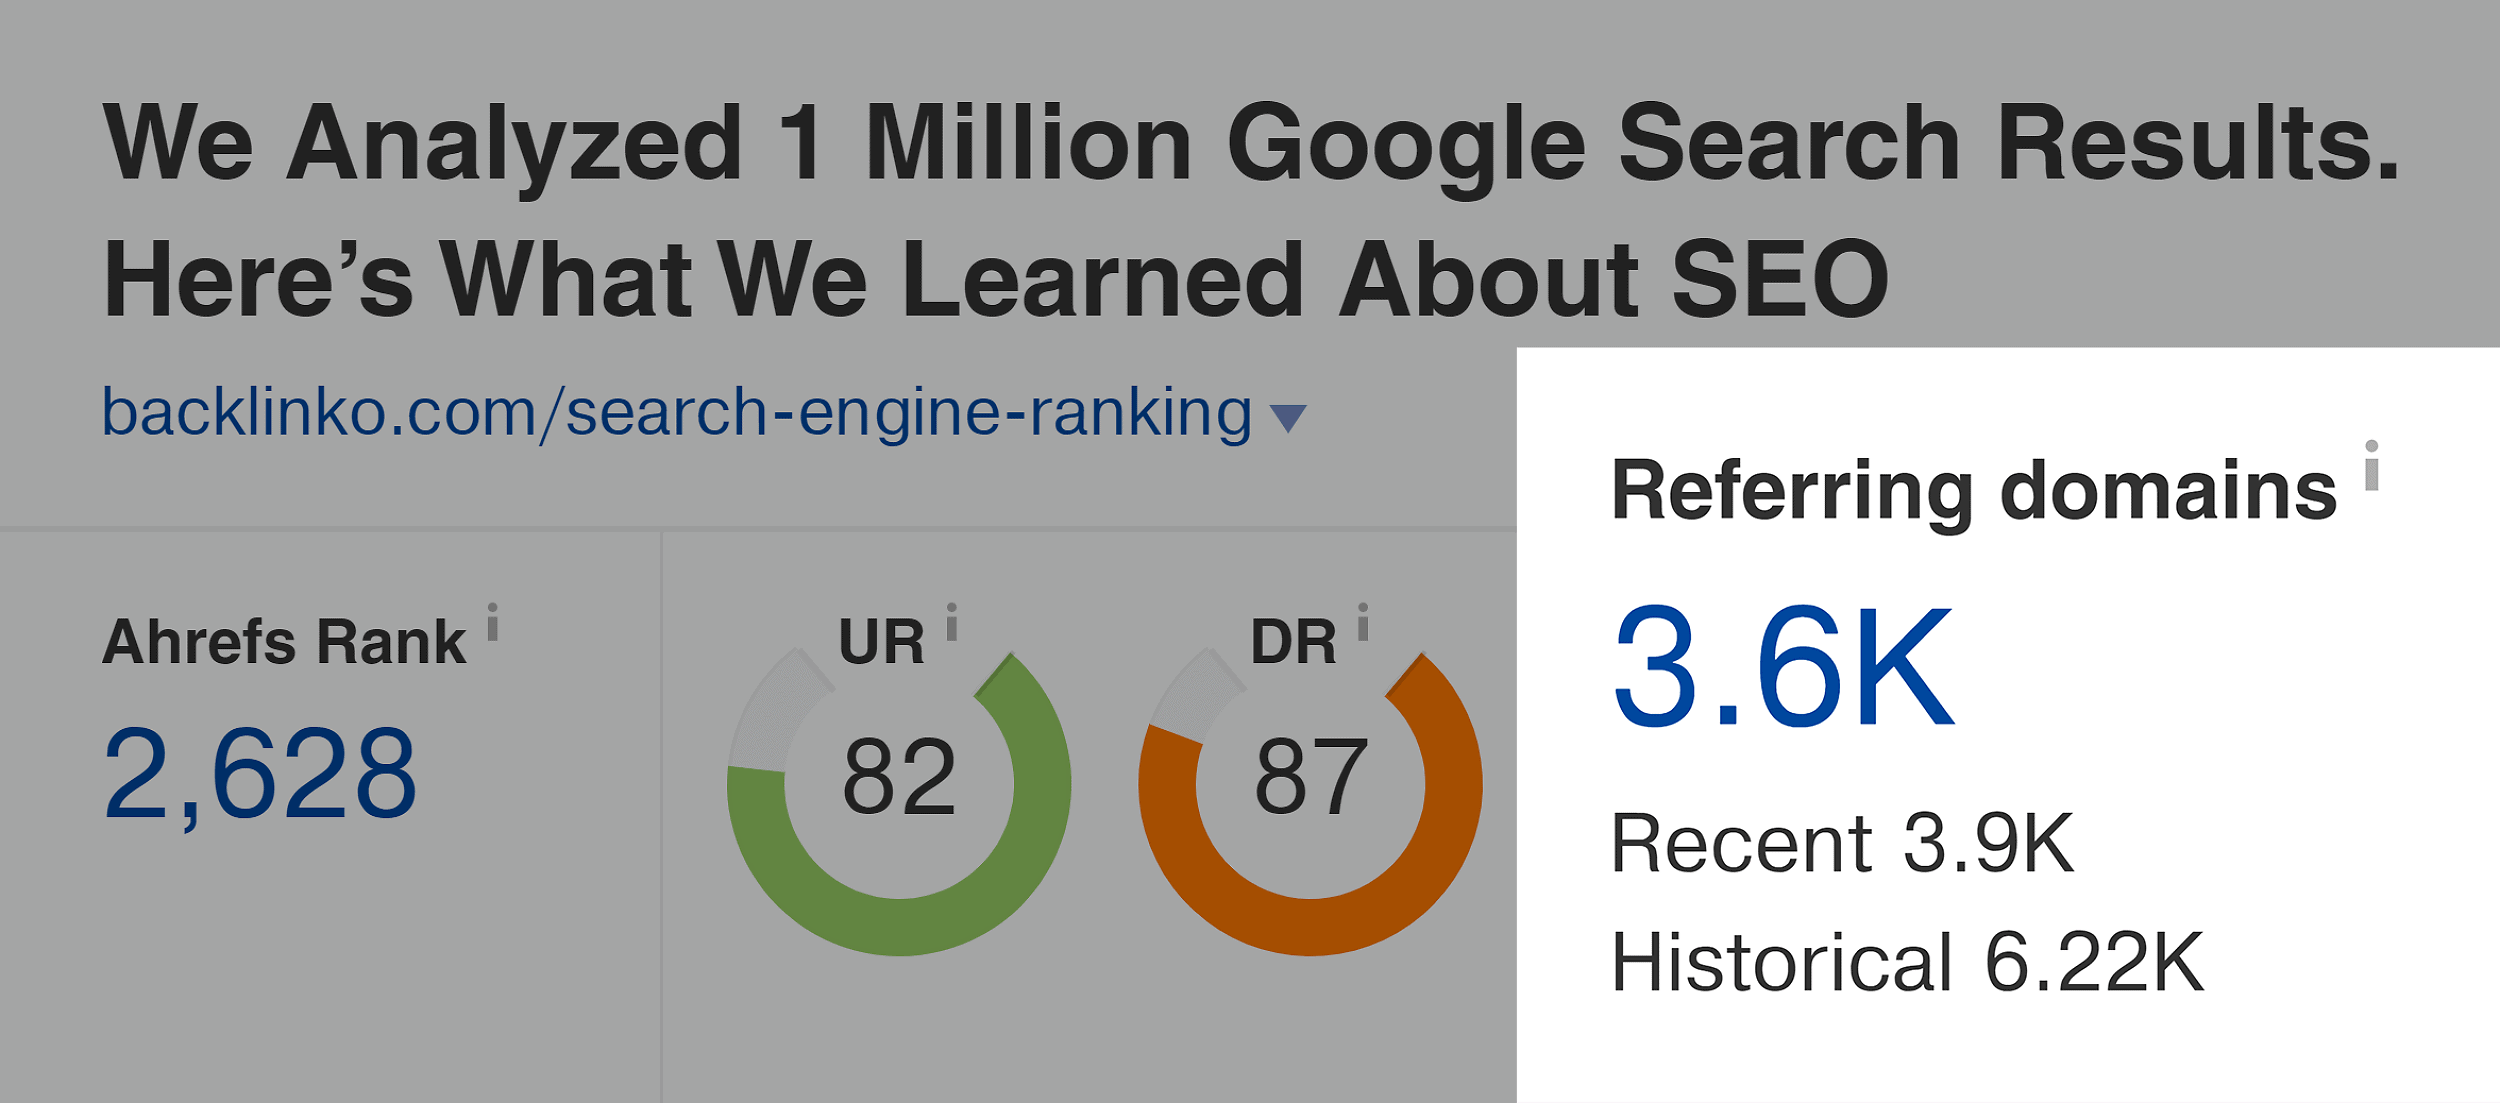 Search engine ranking – Referring domains